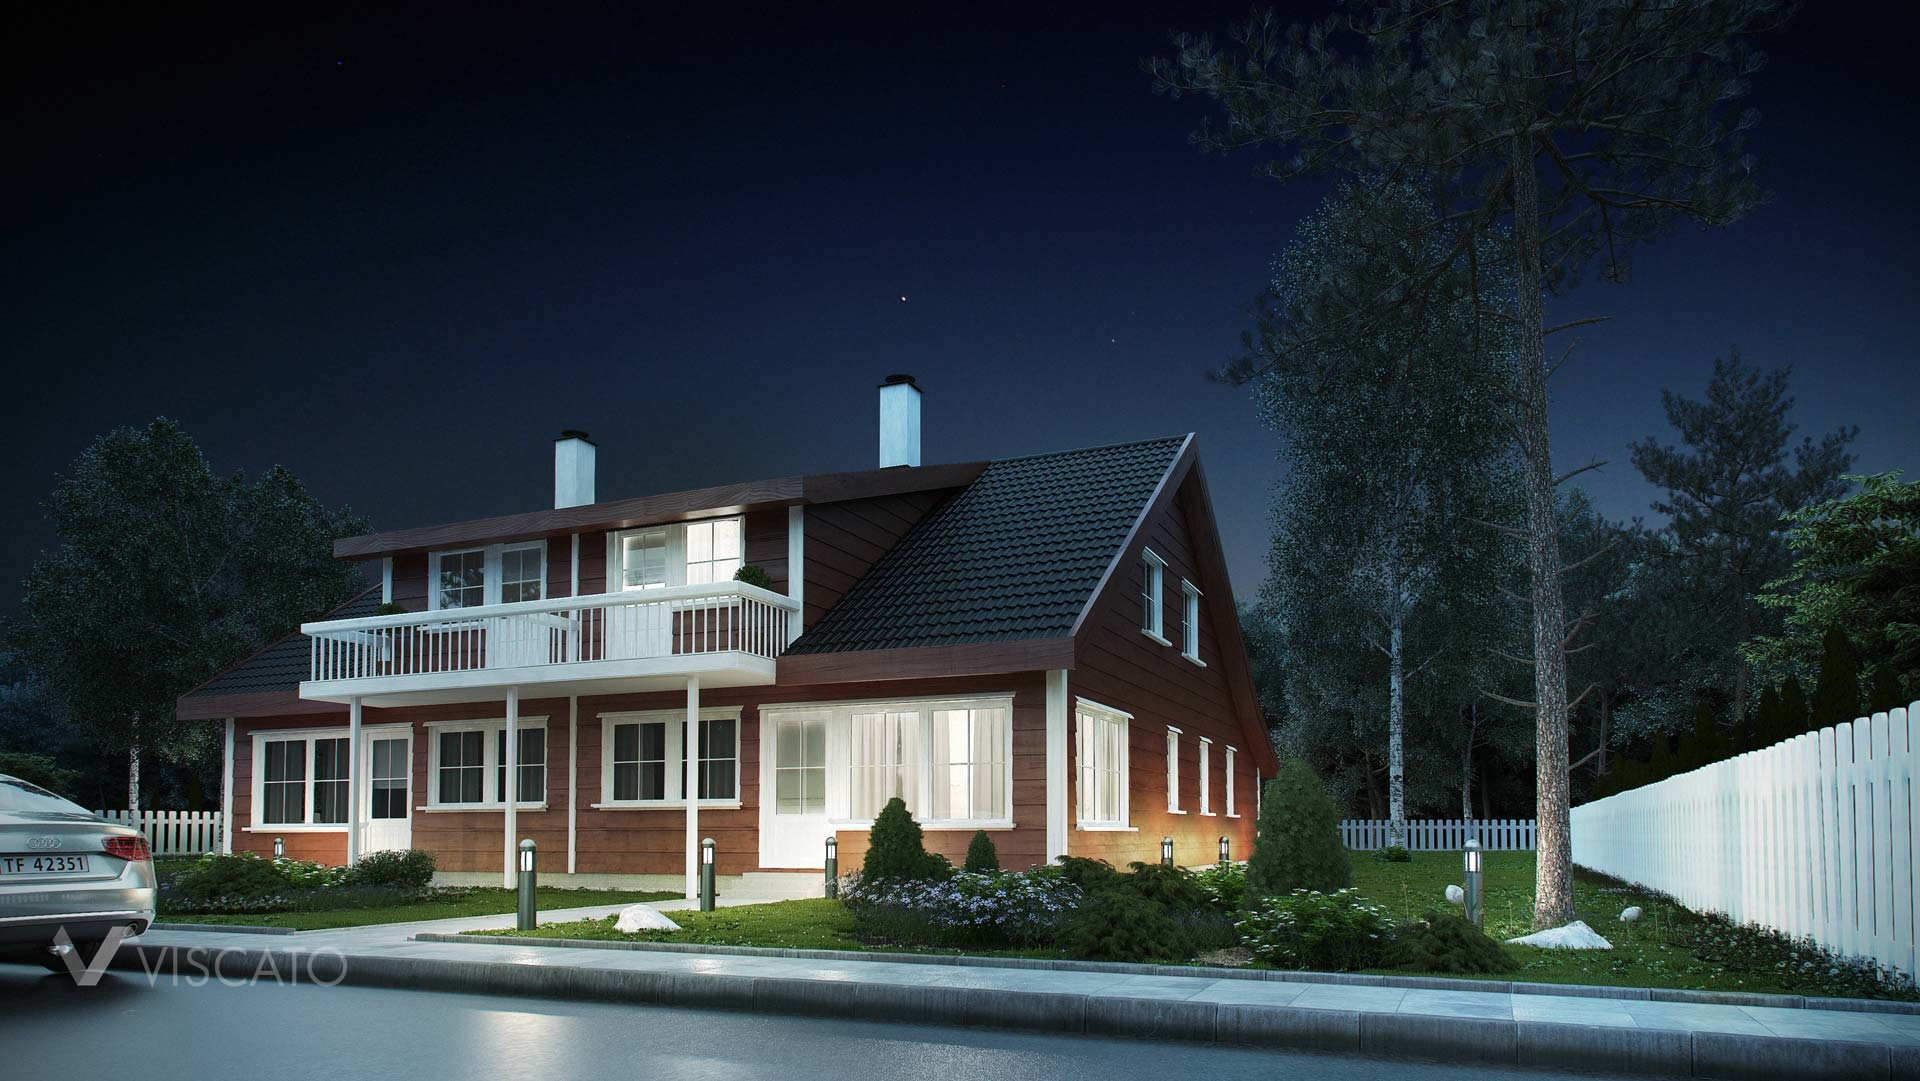 Tomannsbustad - exterior night rendering of typical norwegian house